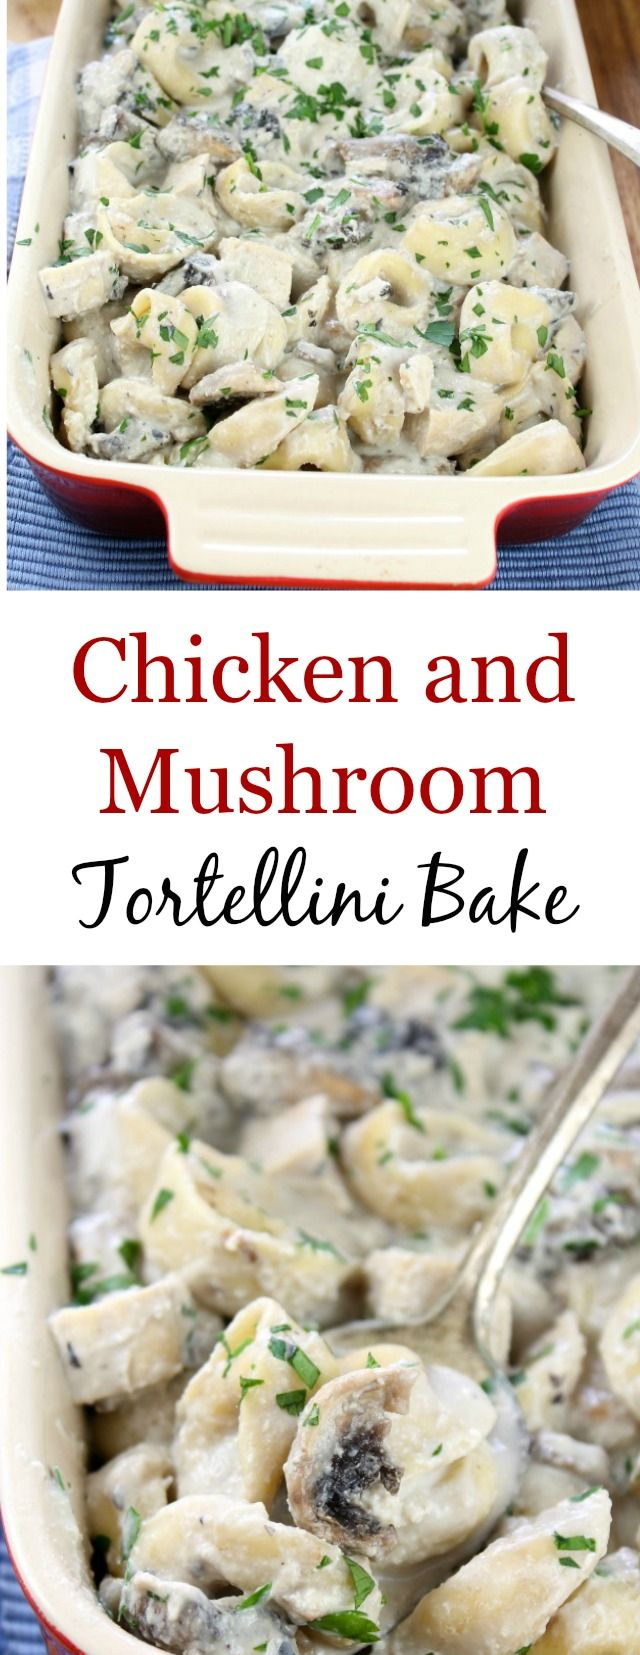 Chicken and Mushroom Tortellini Bake ~ Amazing comfort food. Recipe found at missinthekitchen.com